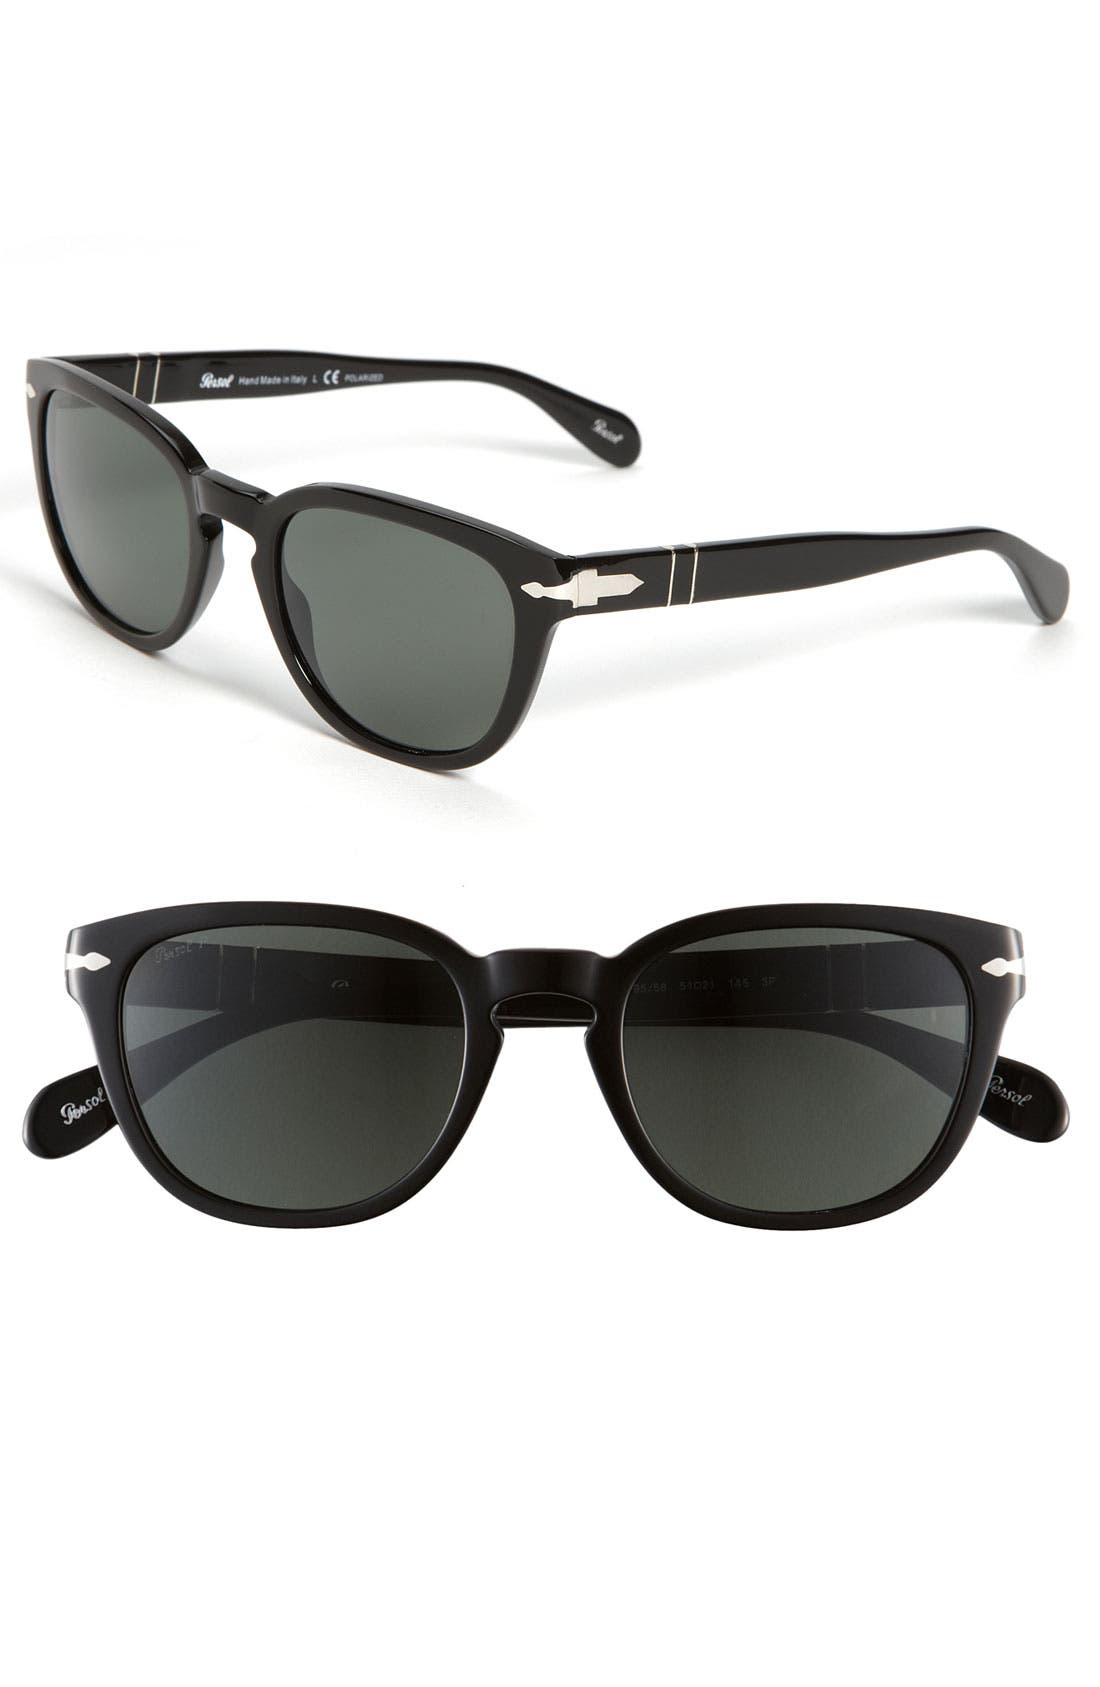 Alternate Image 1 Selected - Persol Retro Inspired Polarized Sunglasses